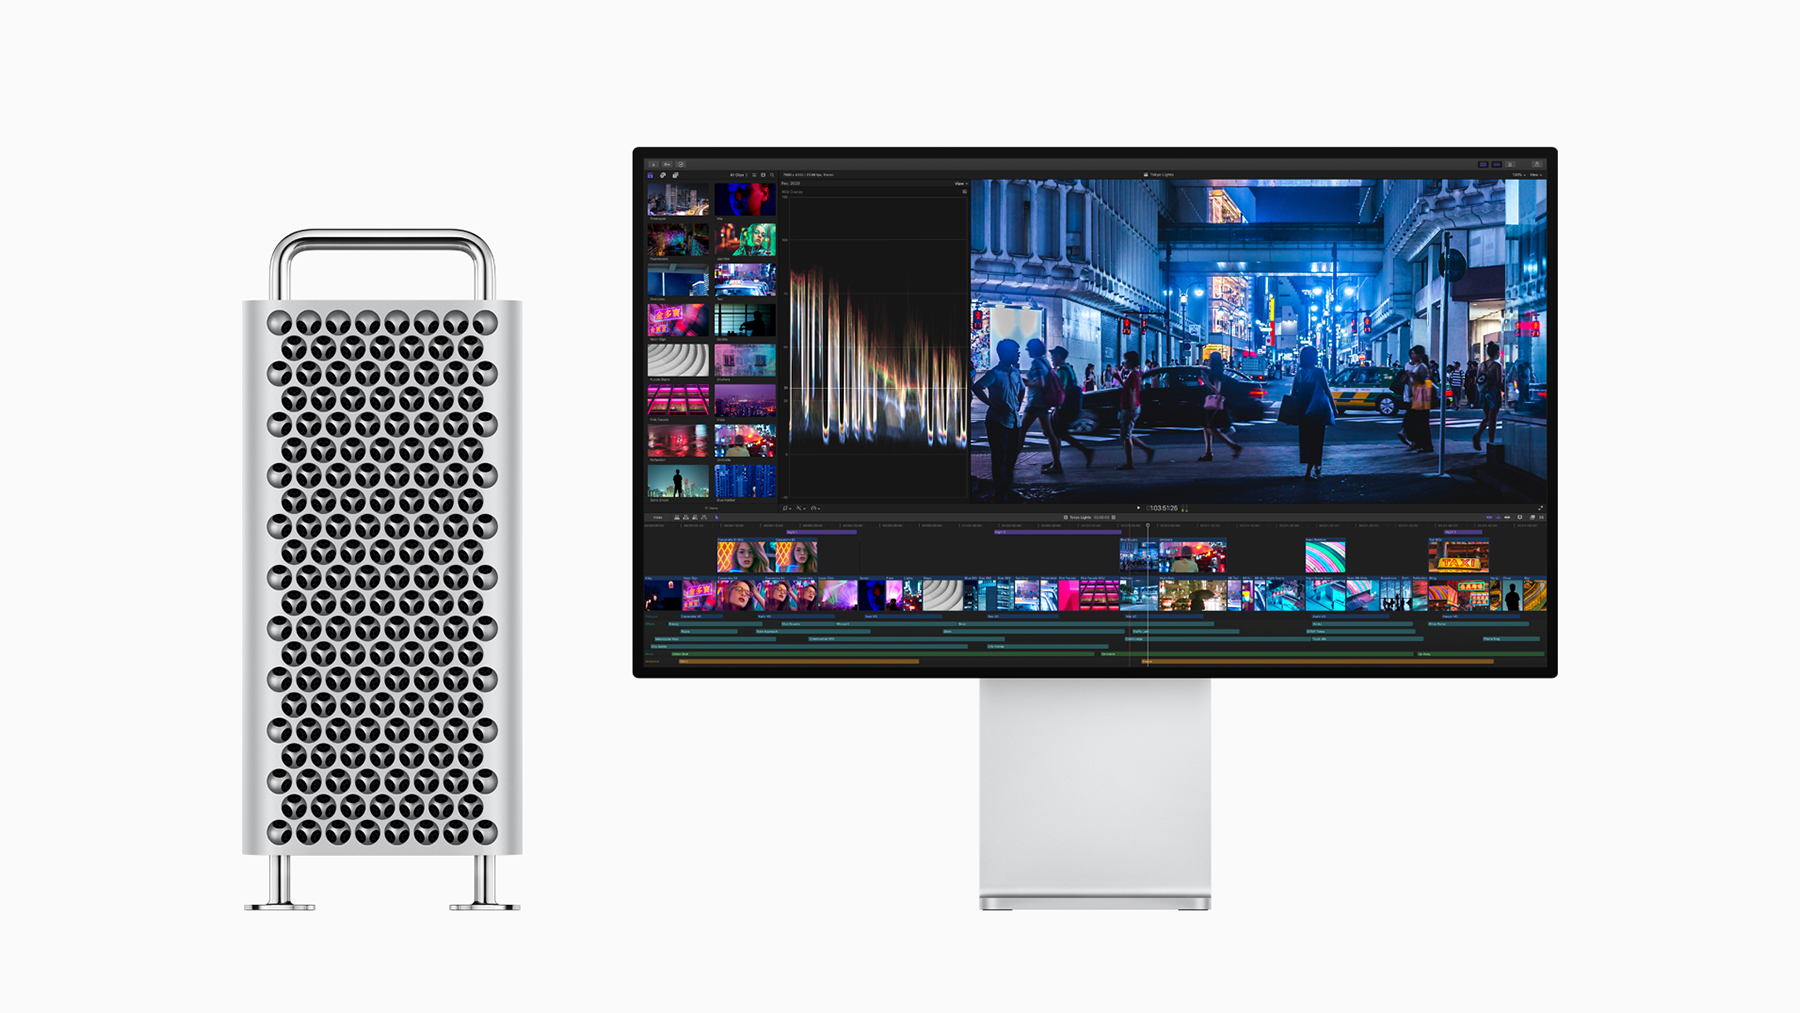 You can now pay up to $60,000 for the Mac Pro and Pro Display XDR